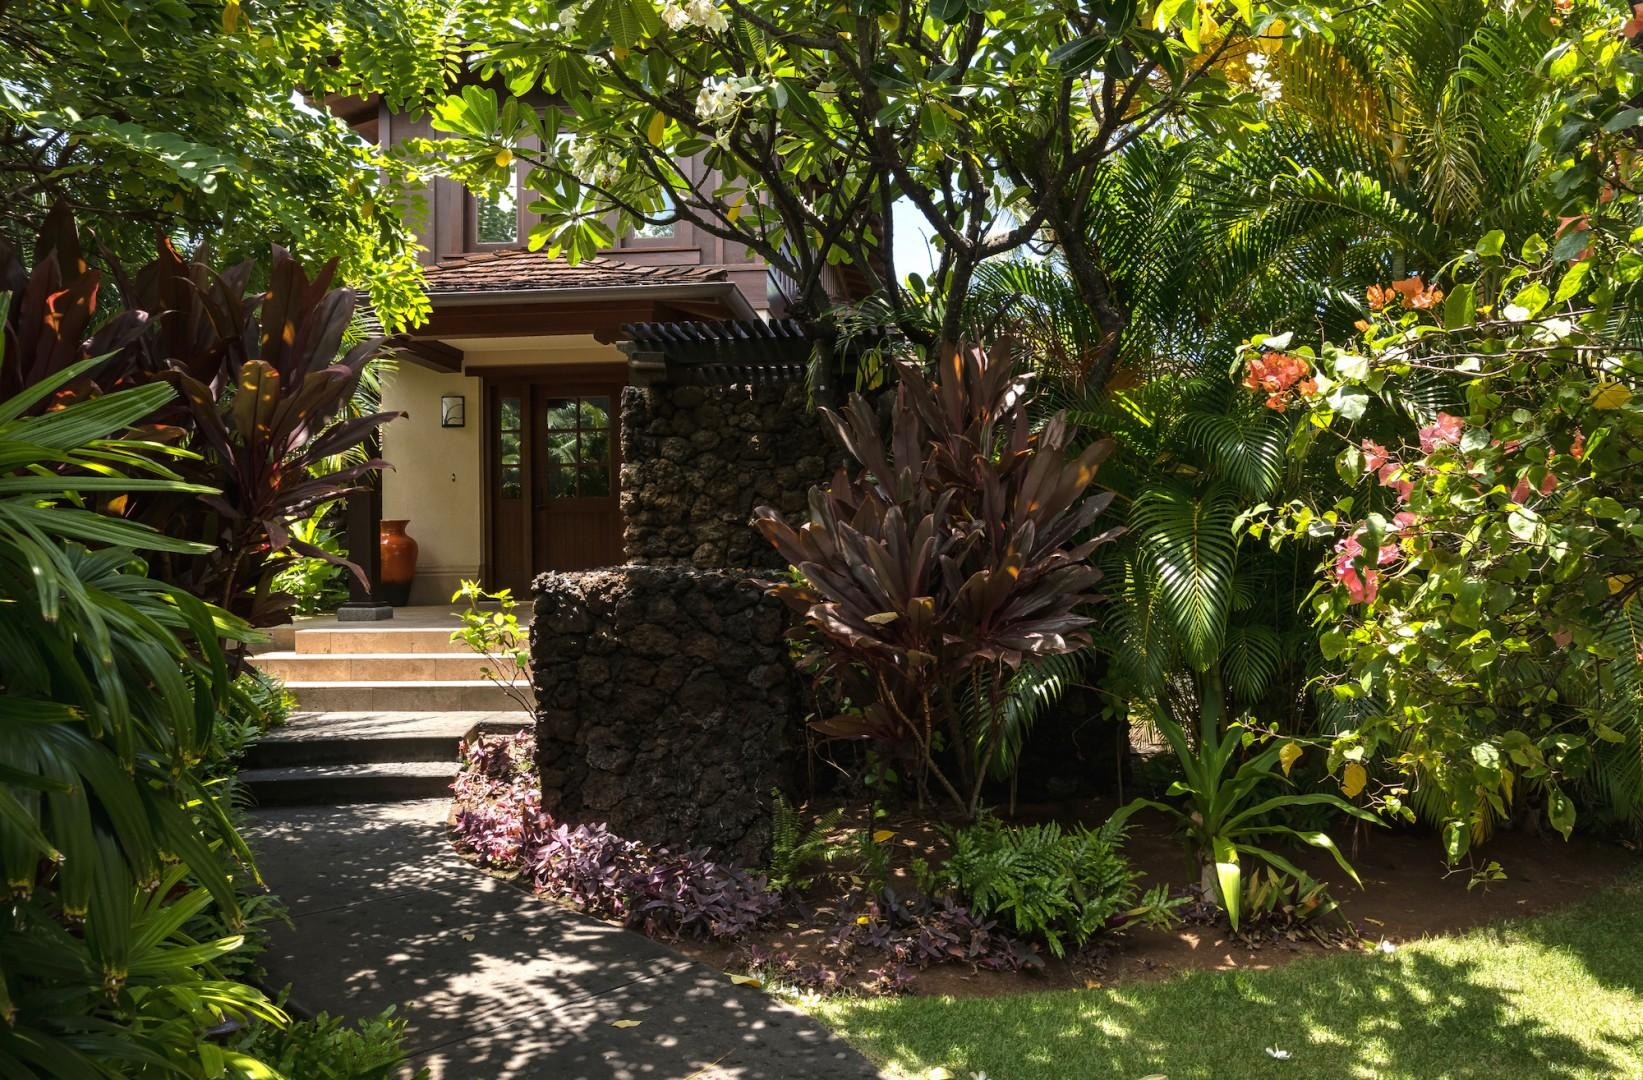 Gorgeous tropical landscaping leads to your private villa entrance.